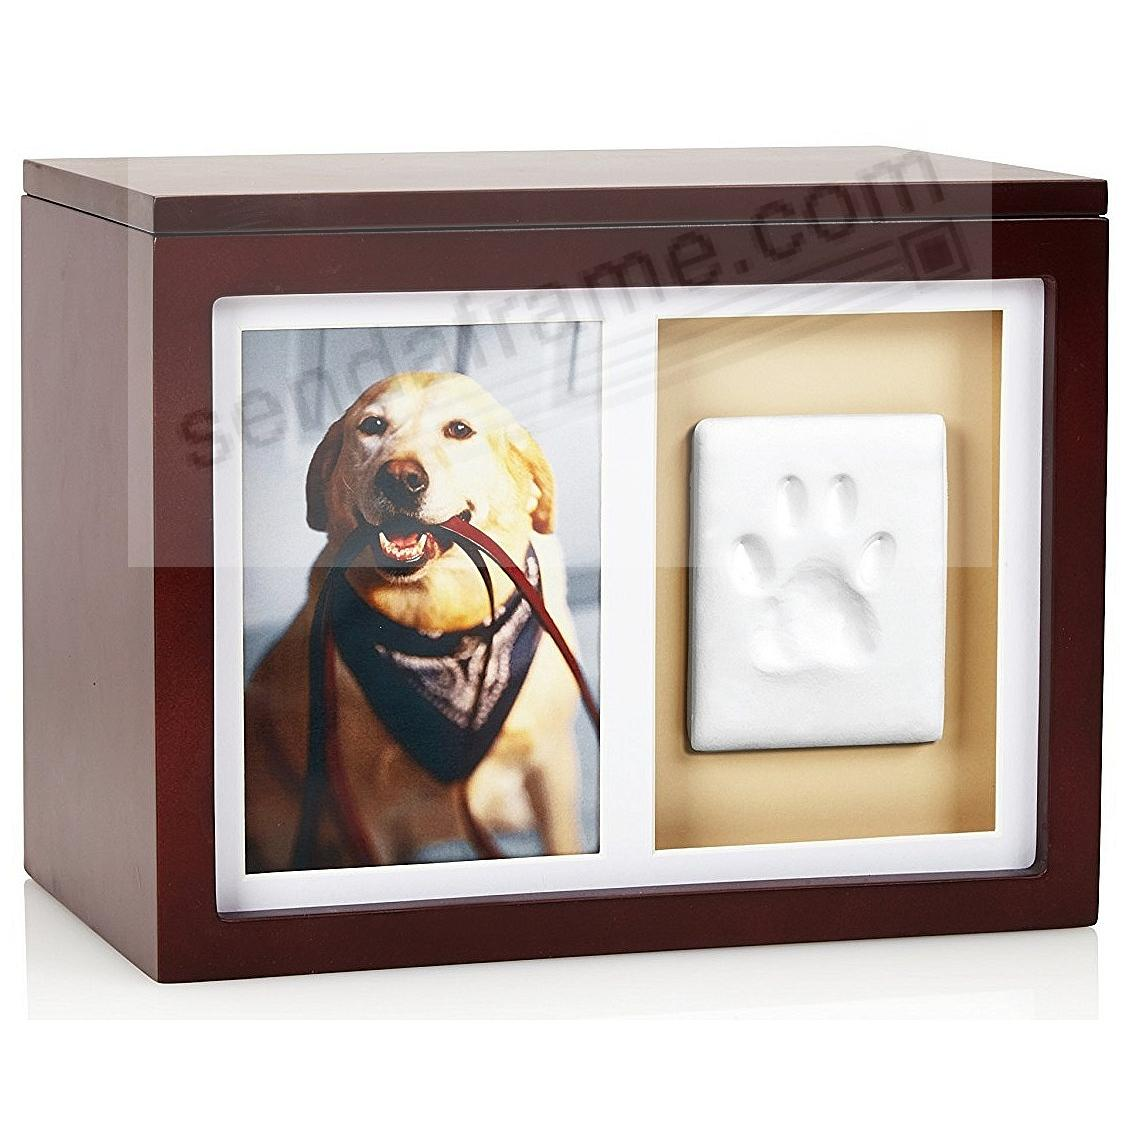 Pawprints® Mahogany Keepsake 5x7/4x6 frame + Box Kit